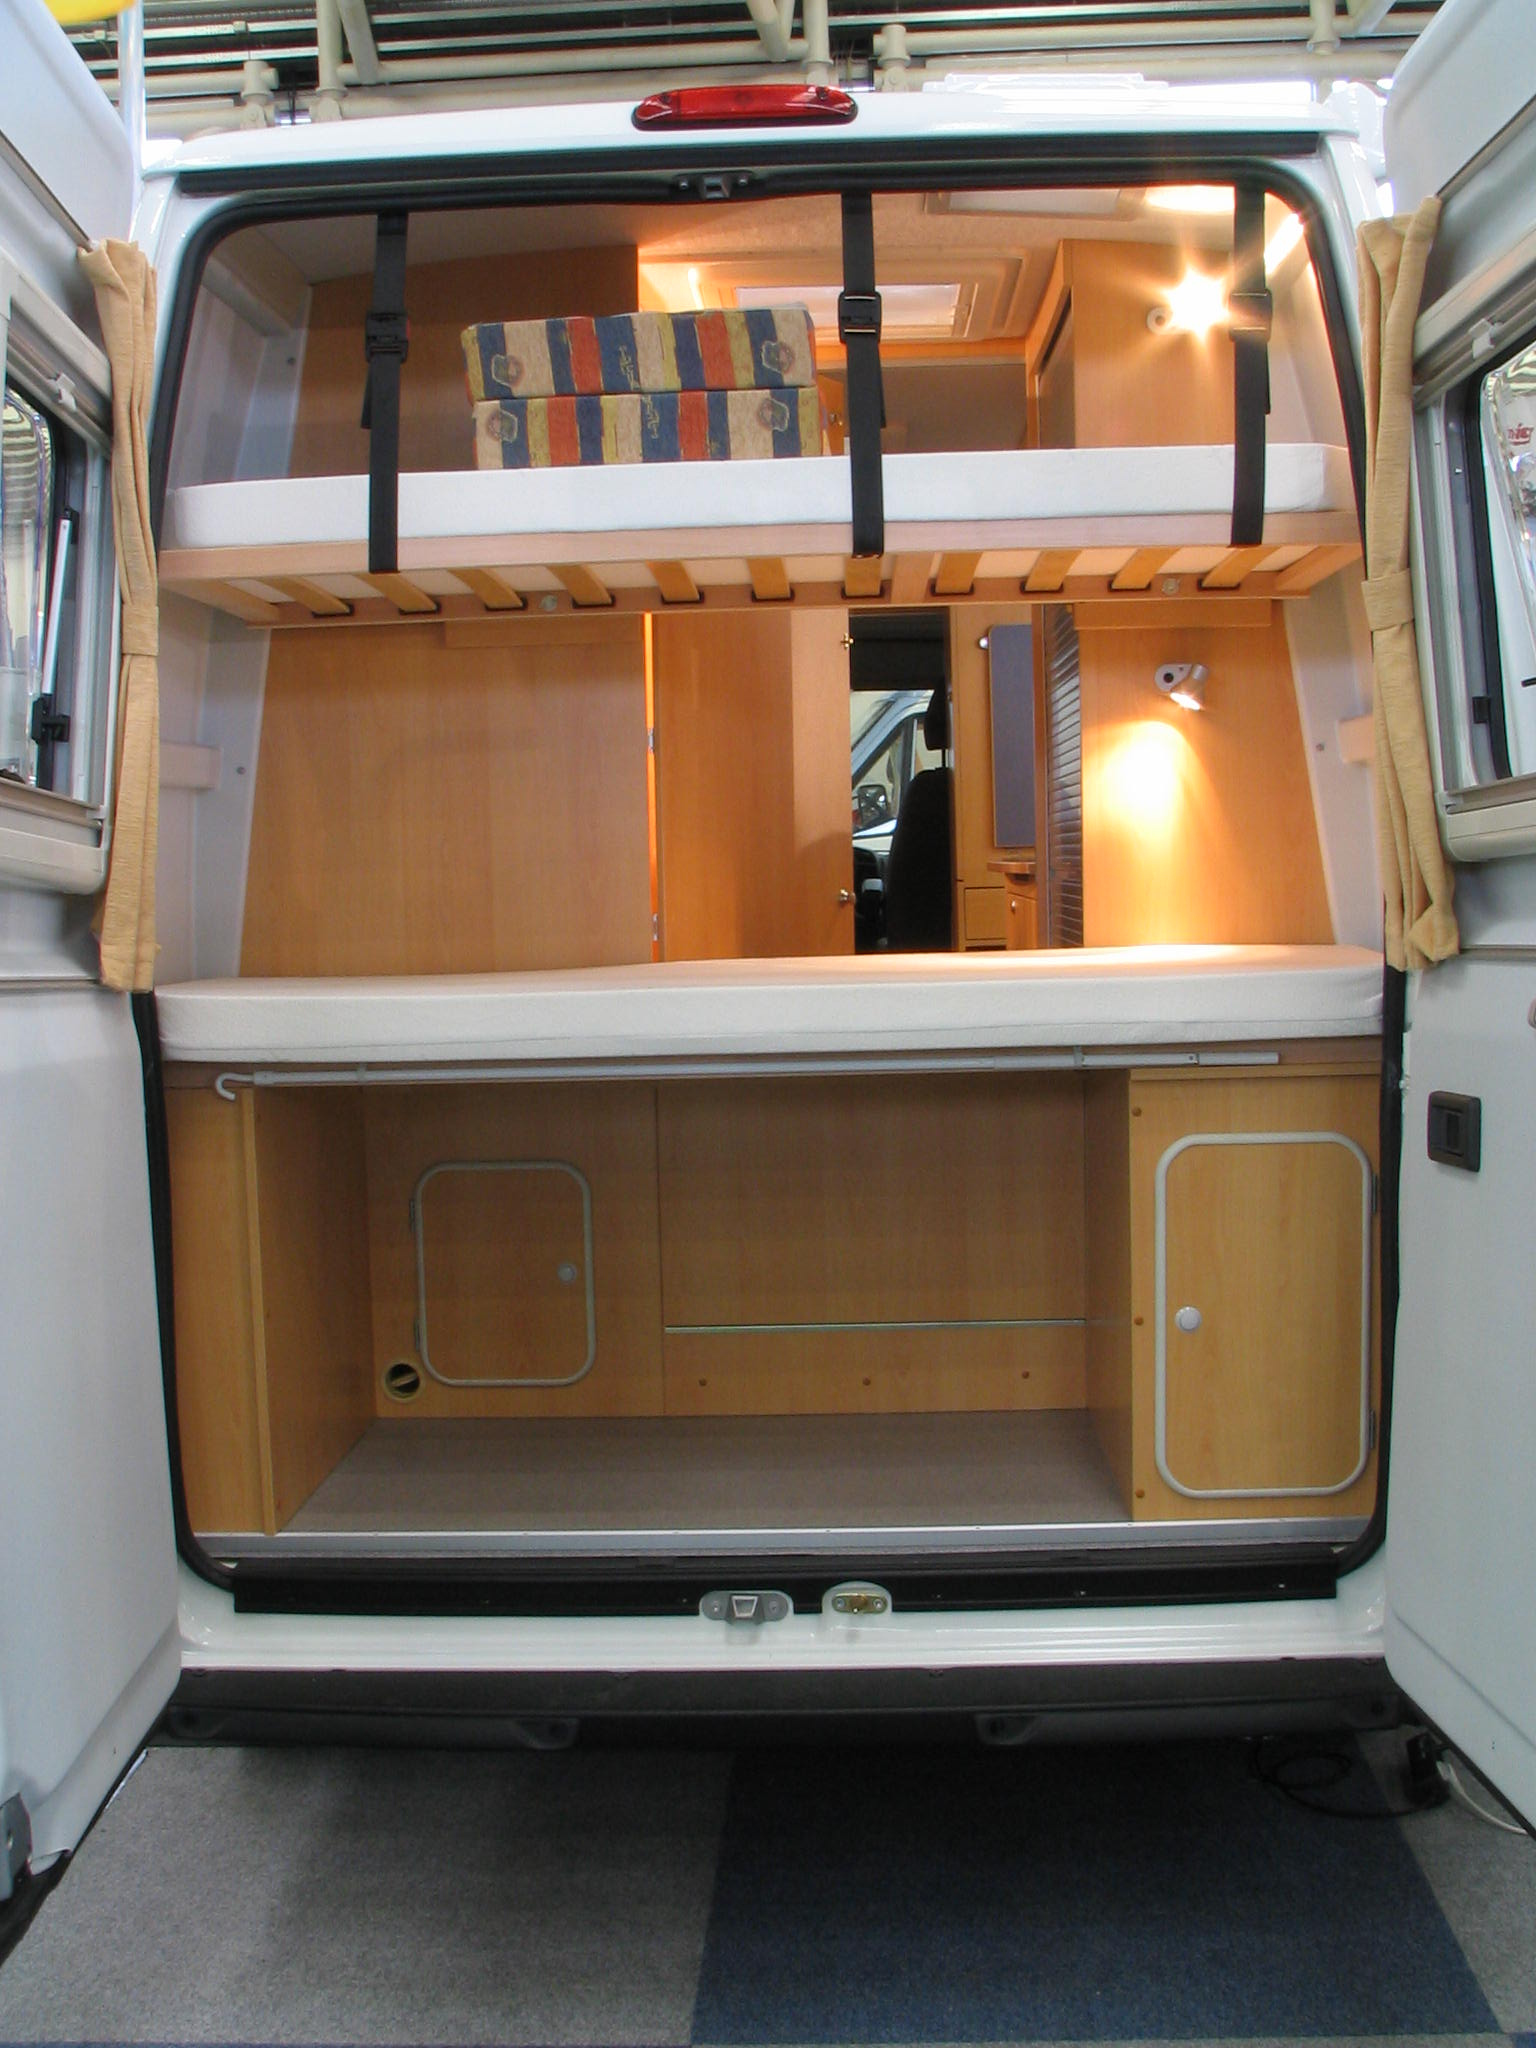 fiat ducato campingausbau mit stockbetten. Black Bedroom Furniture Sets. Home Design Ideas